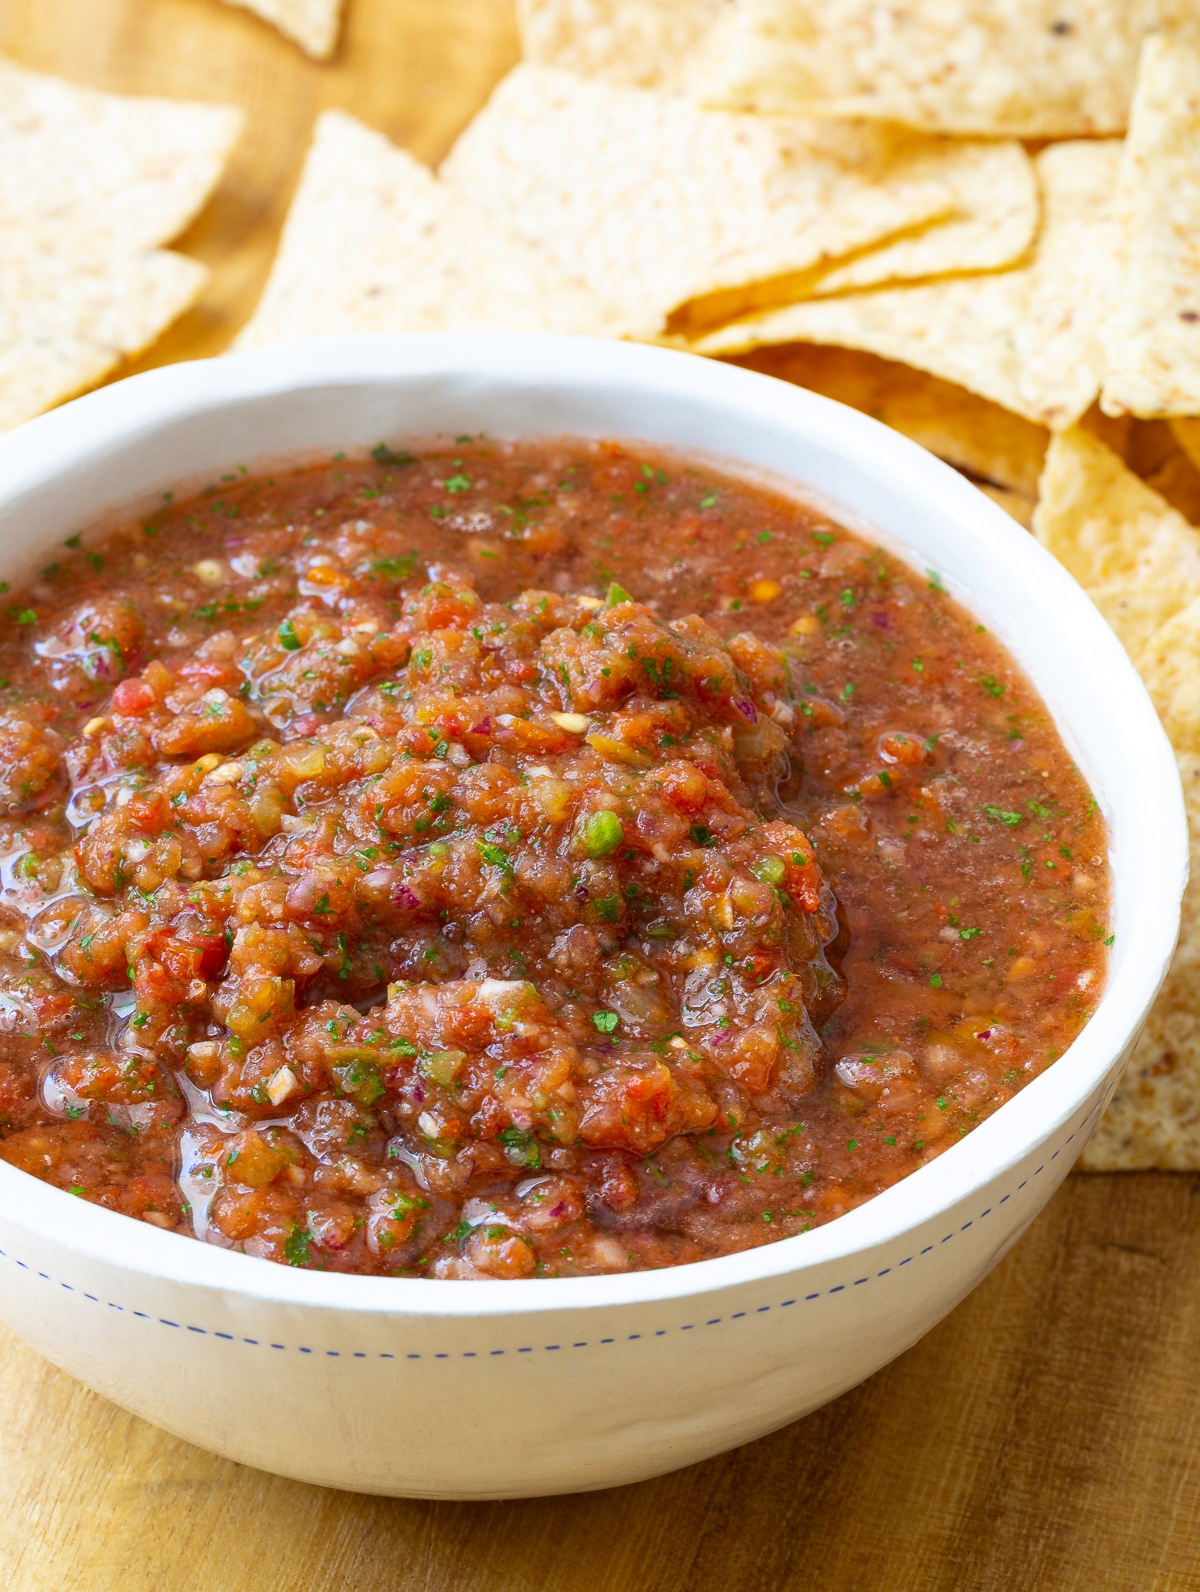 The Best Salsa Recipe (Quick, Healthy & Delicious!) #ASpicyPerspective #salsa #mexican #cincodemayo #fresh #homemade #best